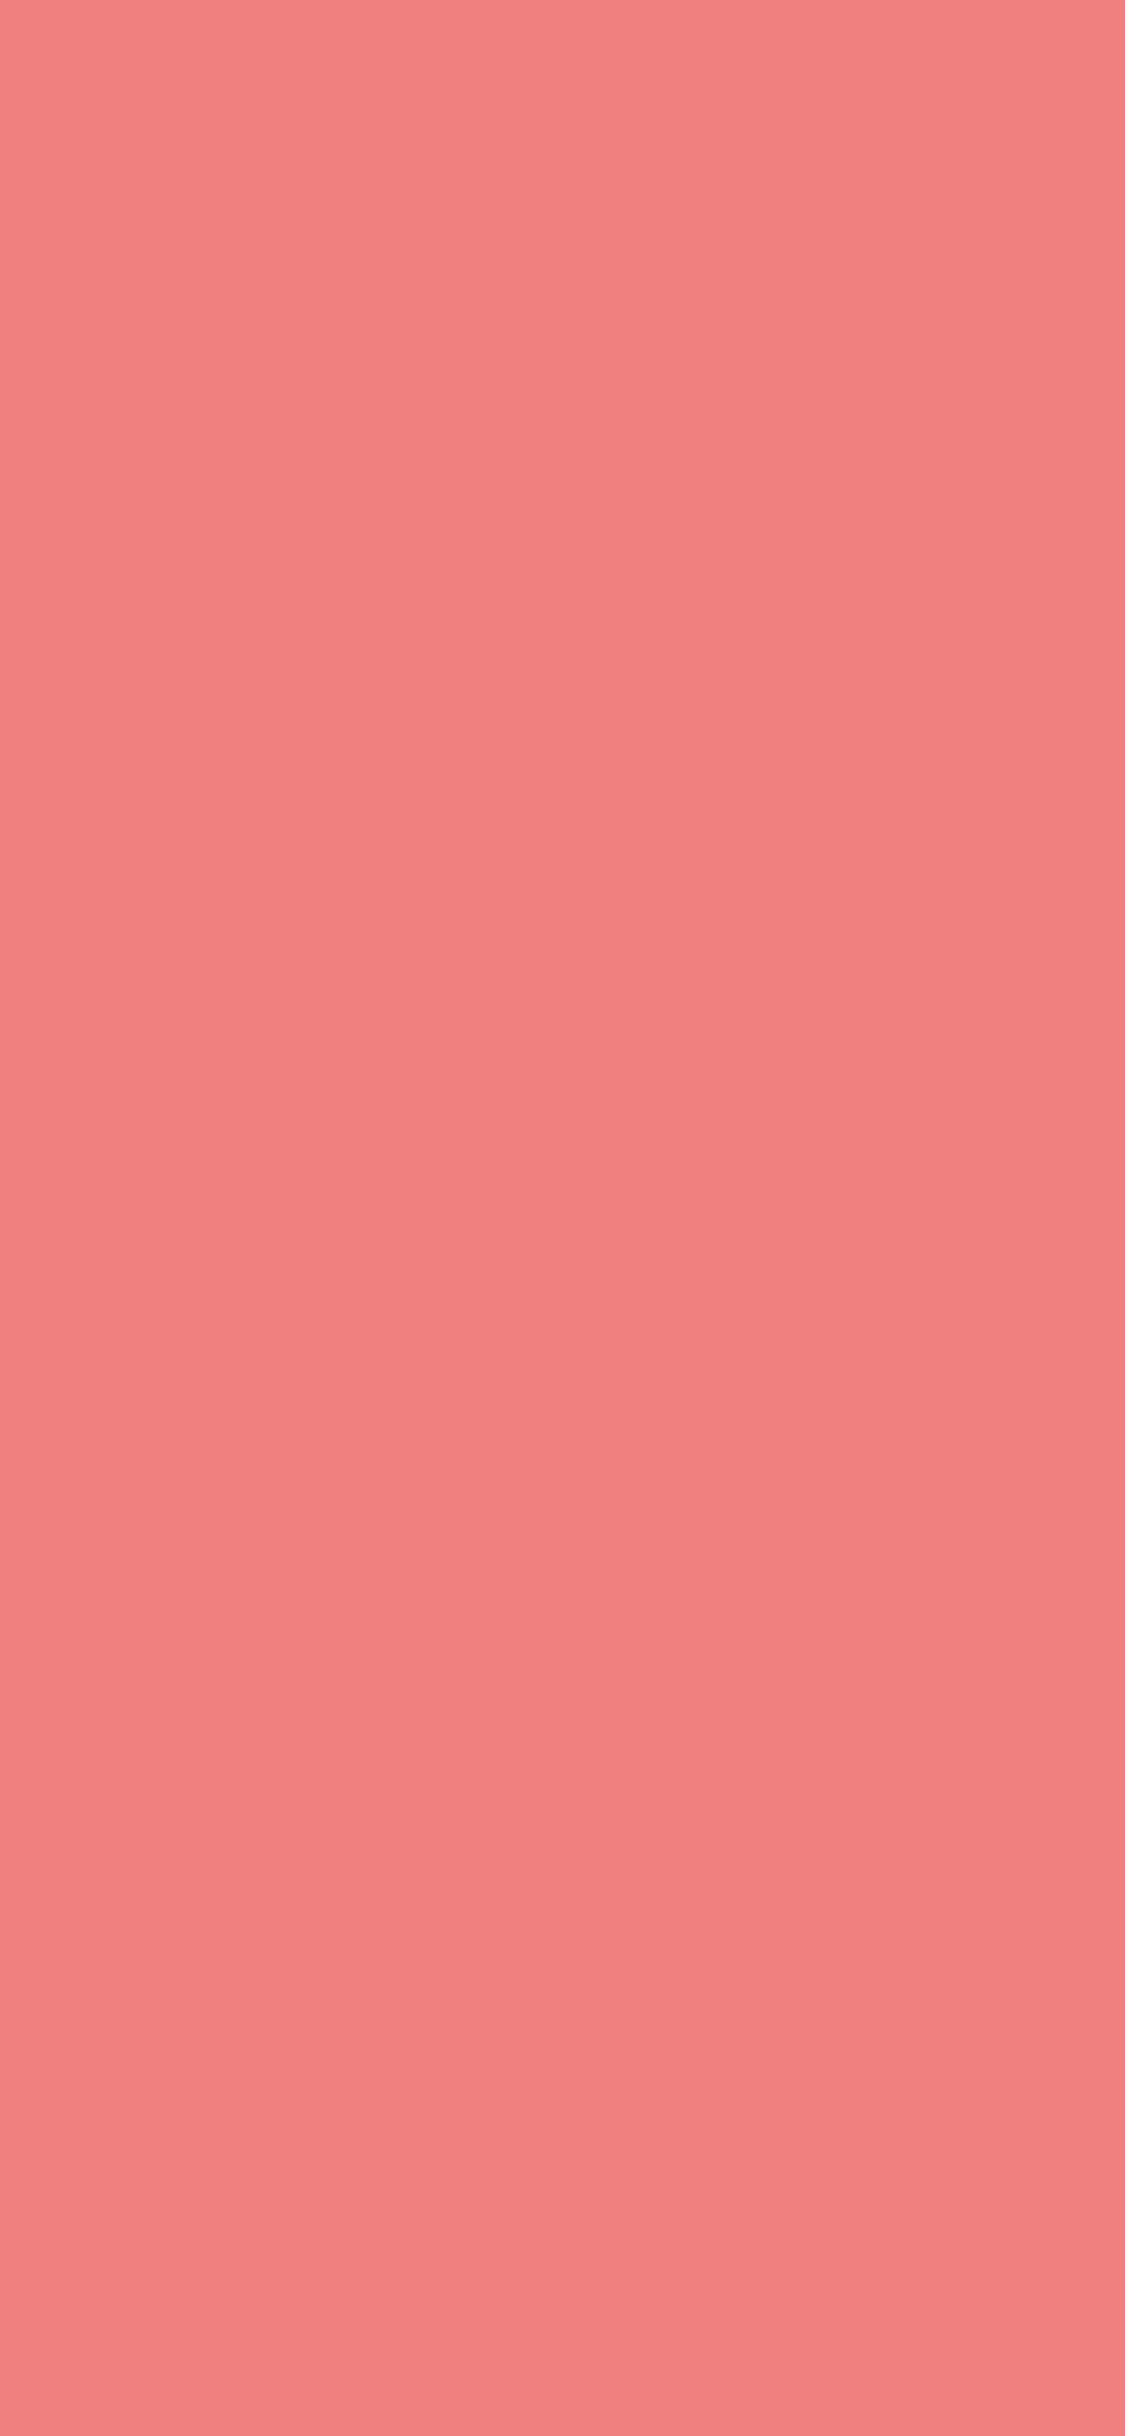 1125x2436 Light Coral Solid Color Background